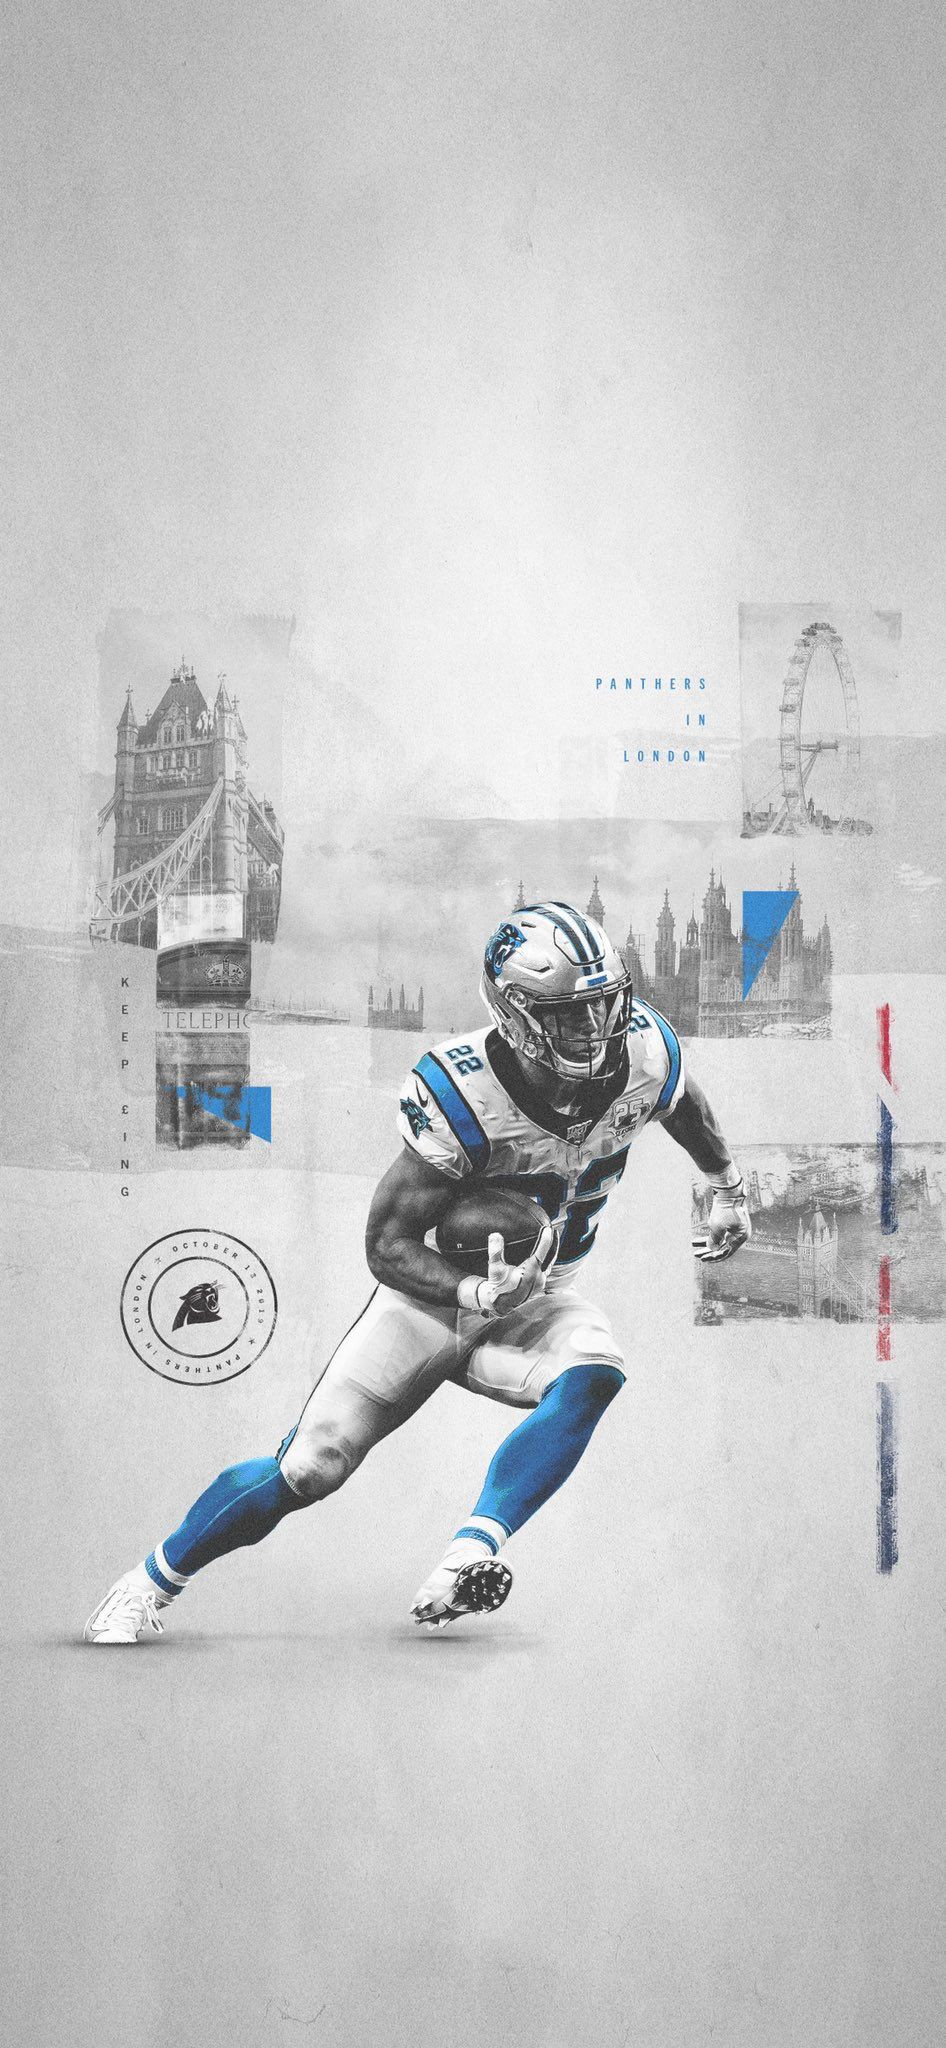 Pin By Gina Keane On Athletic Branding With Images Sports Graphic Design Graphic Design Posters Layout Sports Design Inspiration